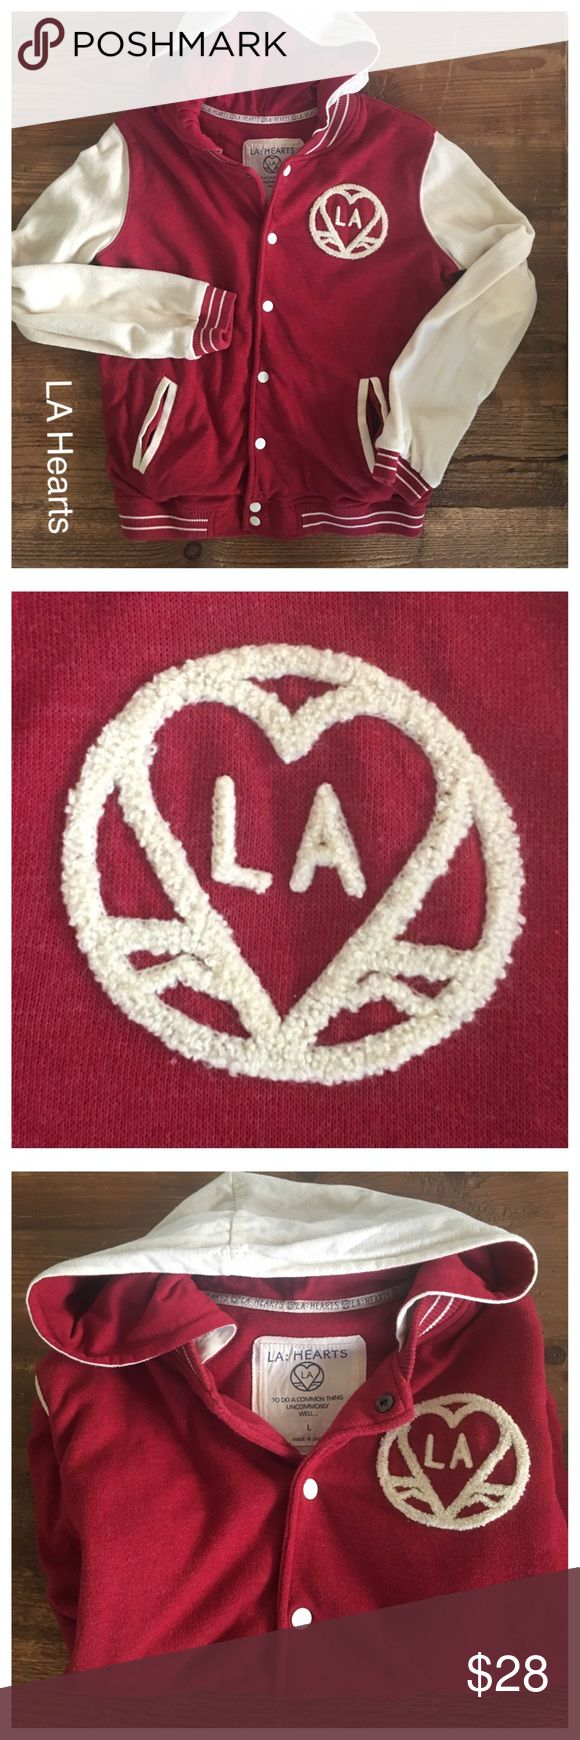 LA Hearts PACSUN cherry bomber heart hoodie Cozy and warm in a rich vibrant cherry with vanilla trim and fuzzy script. In excellent condition, worn only 3-4 x's (tiny minor imperfection on top of left shoulder, tiny thread bump)! From PACSUN    I love to BUNDLE your likes to save you money! LA Hearts Jackets & Coats